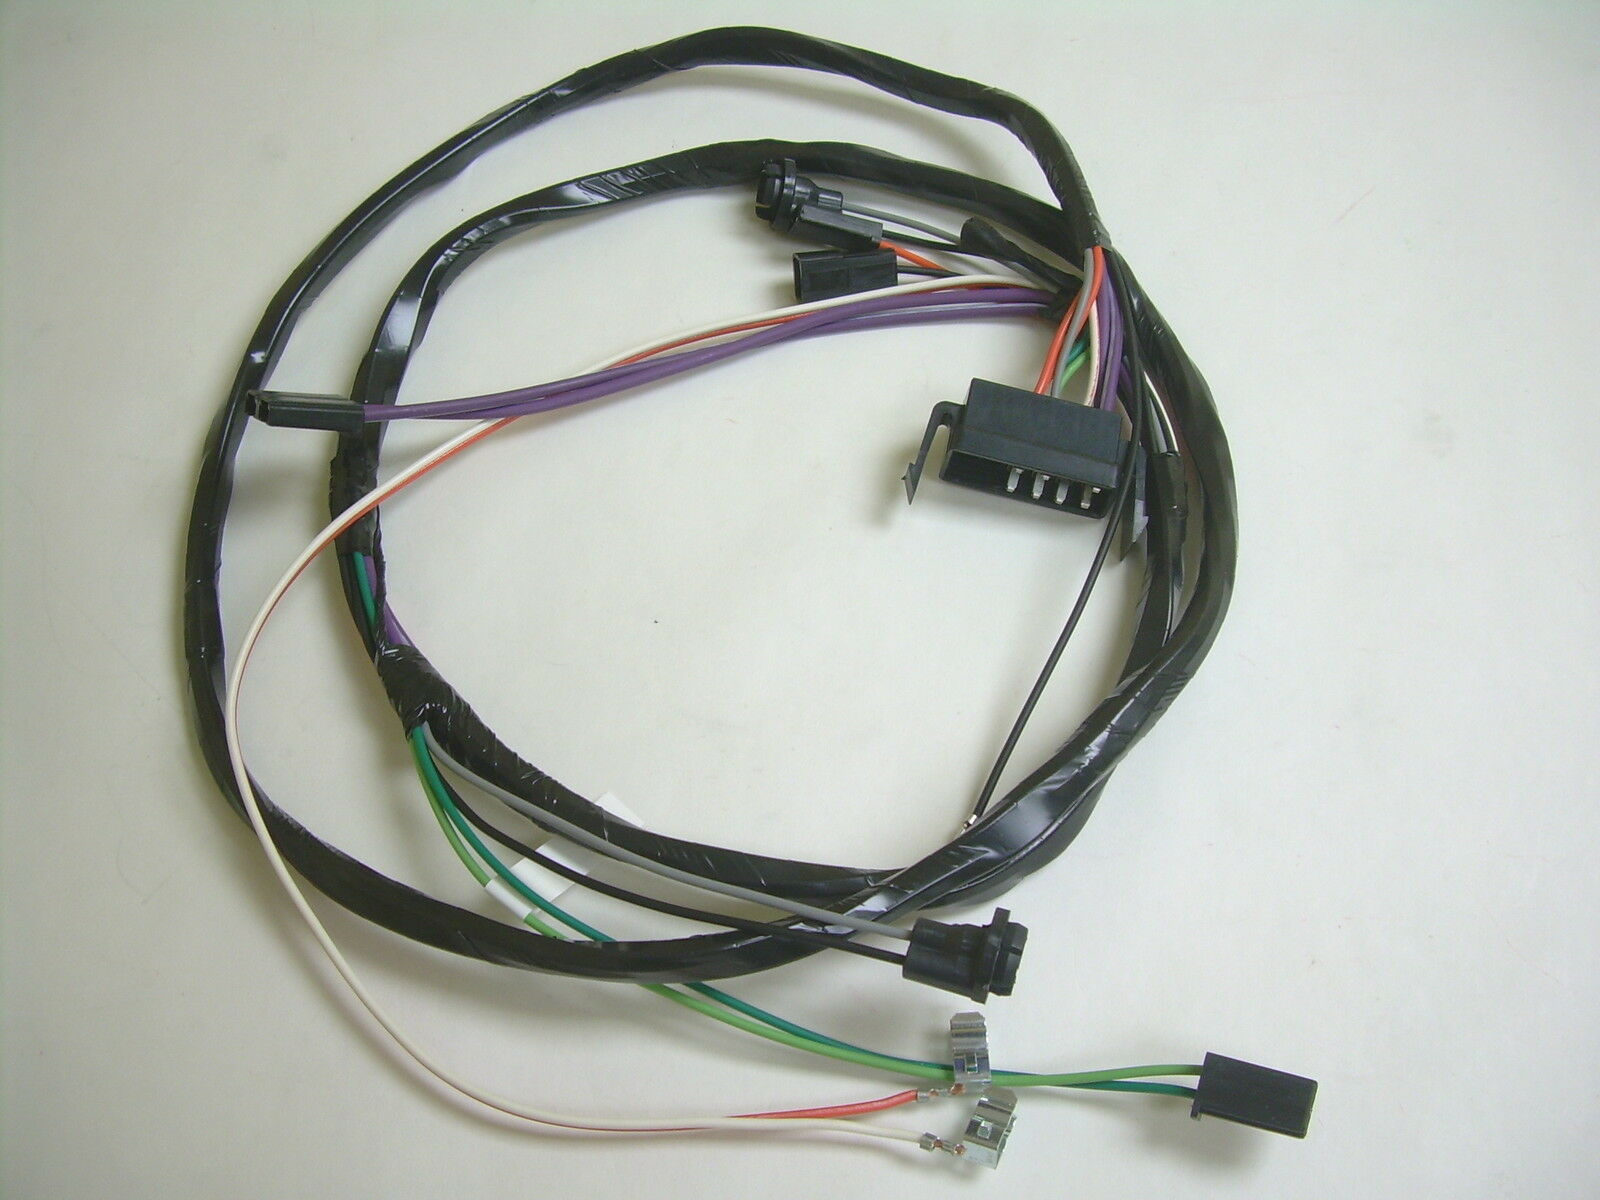 1966 Chevy Impala Ss Console Wiring Harness Automatic Without Gauges 1 Of 5only Available